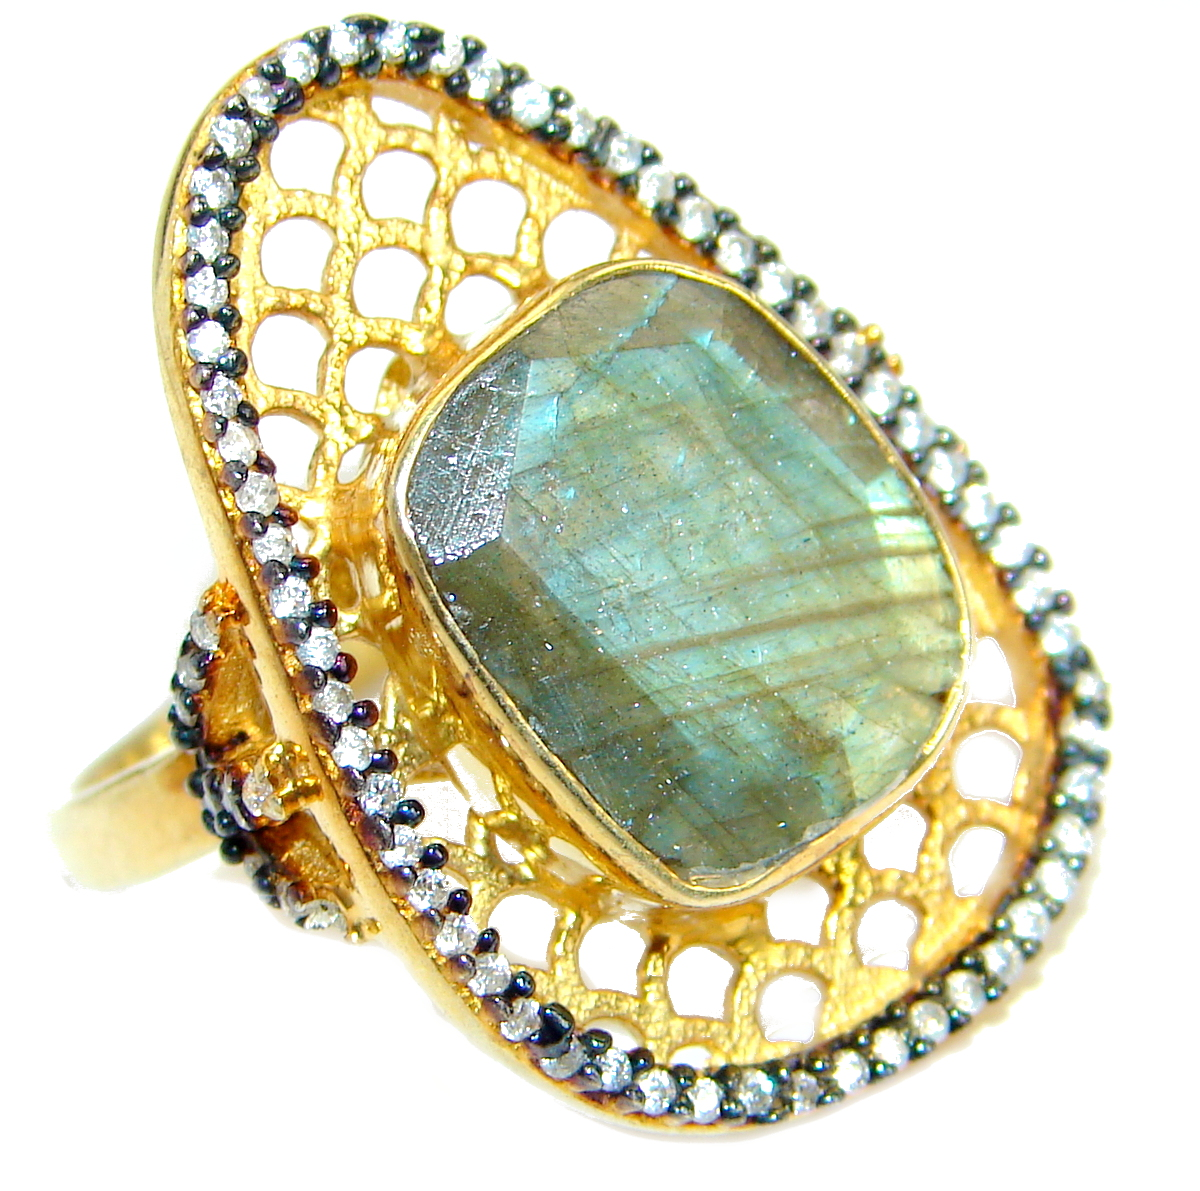 Passiom Fruit Natural 22.5 ct. Labradorite Gold over .925 Sterling Silver Ring s. 7